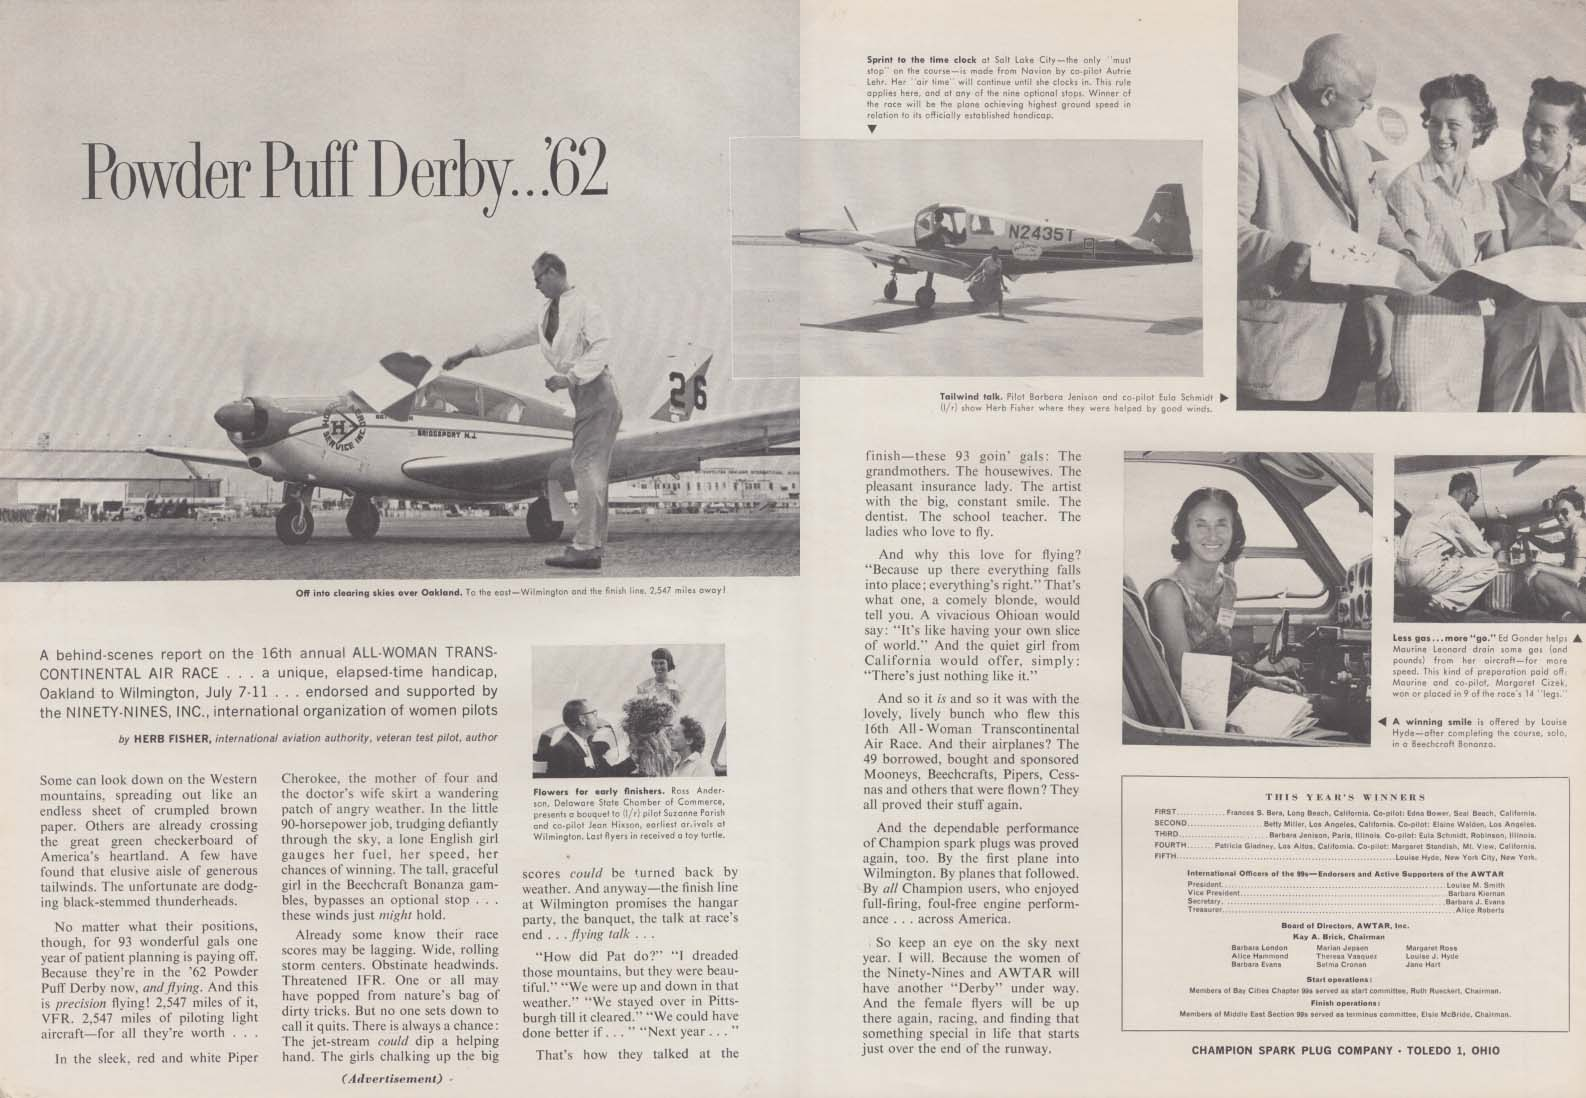 Powder Puff Derby 1962 All-Woman Transcontinental Race Champion Spark Plugs ad